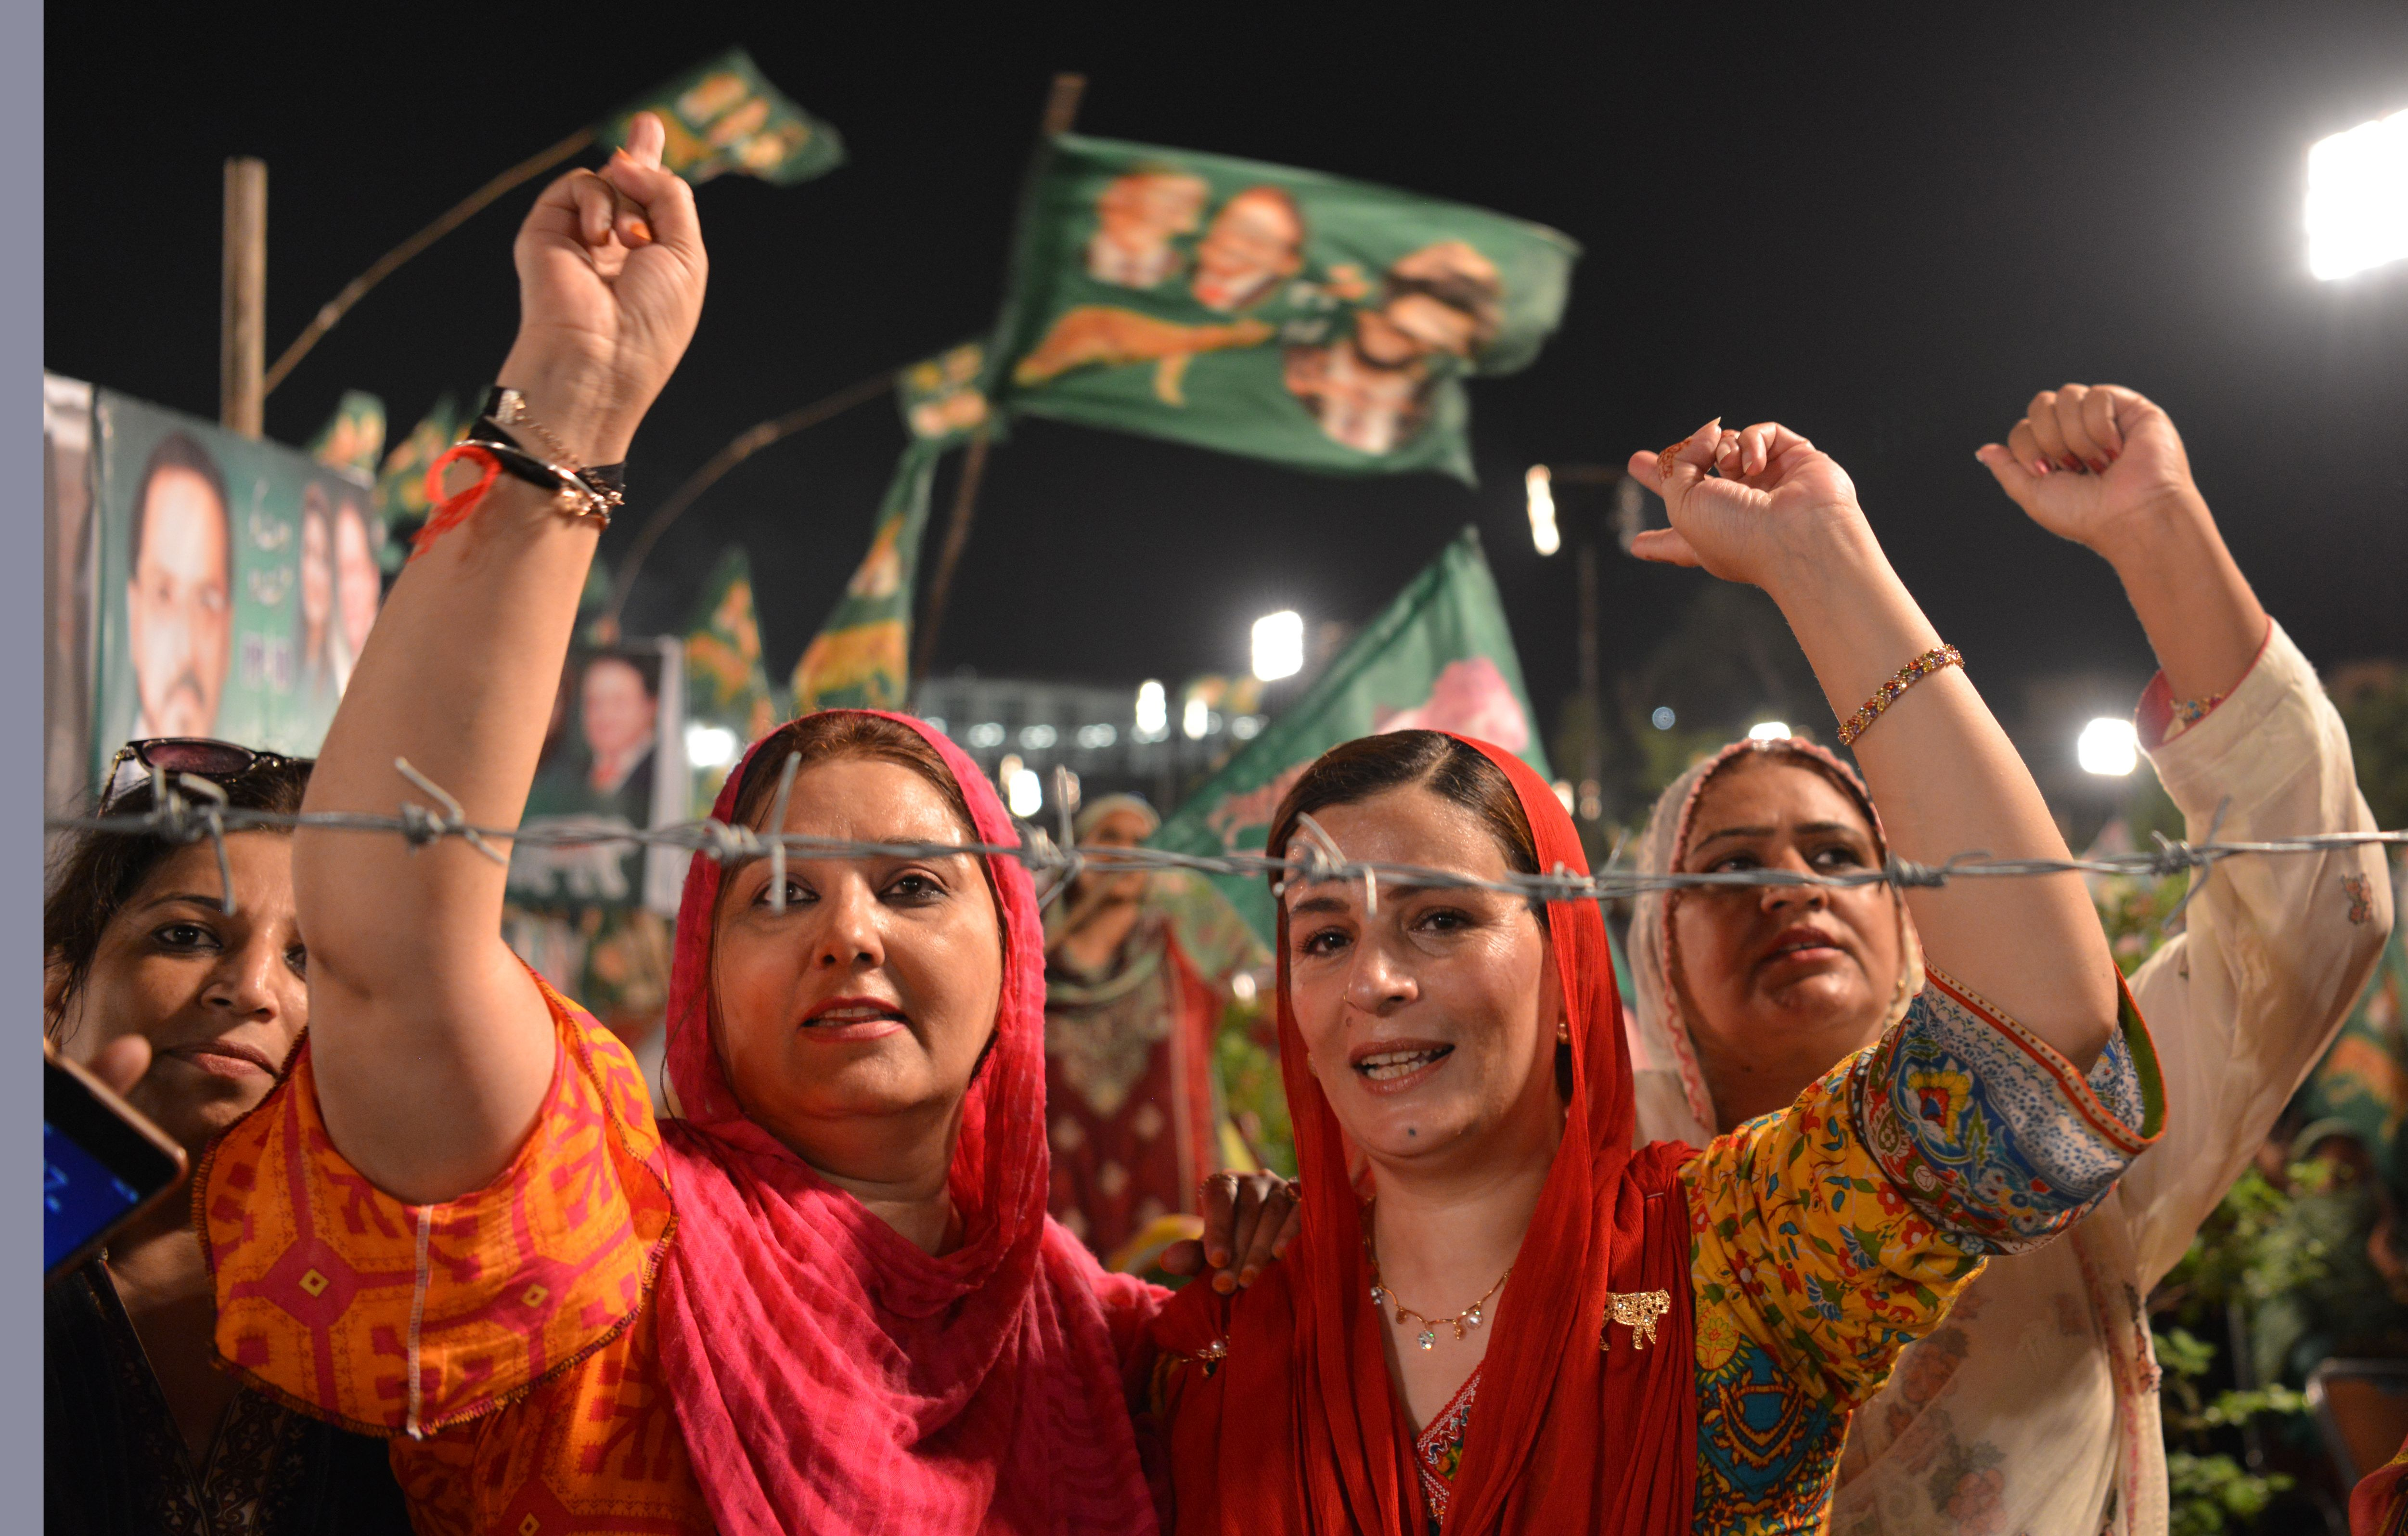 Supporters of Shahbaz Sharif, the younger brother of former Pakistani Prime Minister Nawaz Sharif and head of the Pakistan Muslim League-Nawaz (PML-N), at a campaign meeting ahead of the election in Rawalpindi on July 23, 2018.